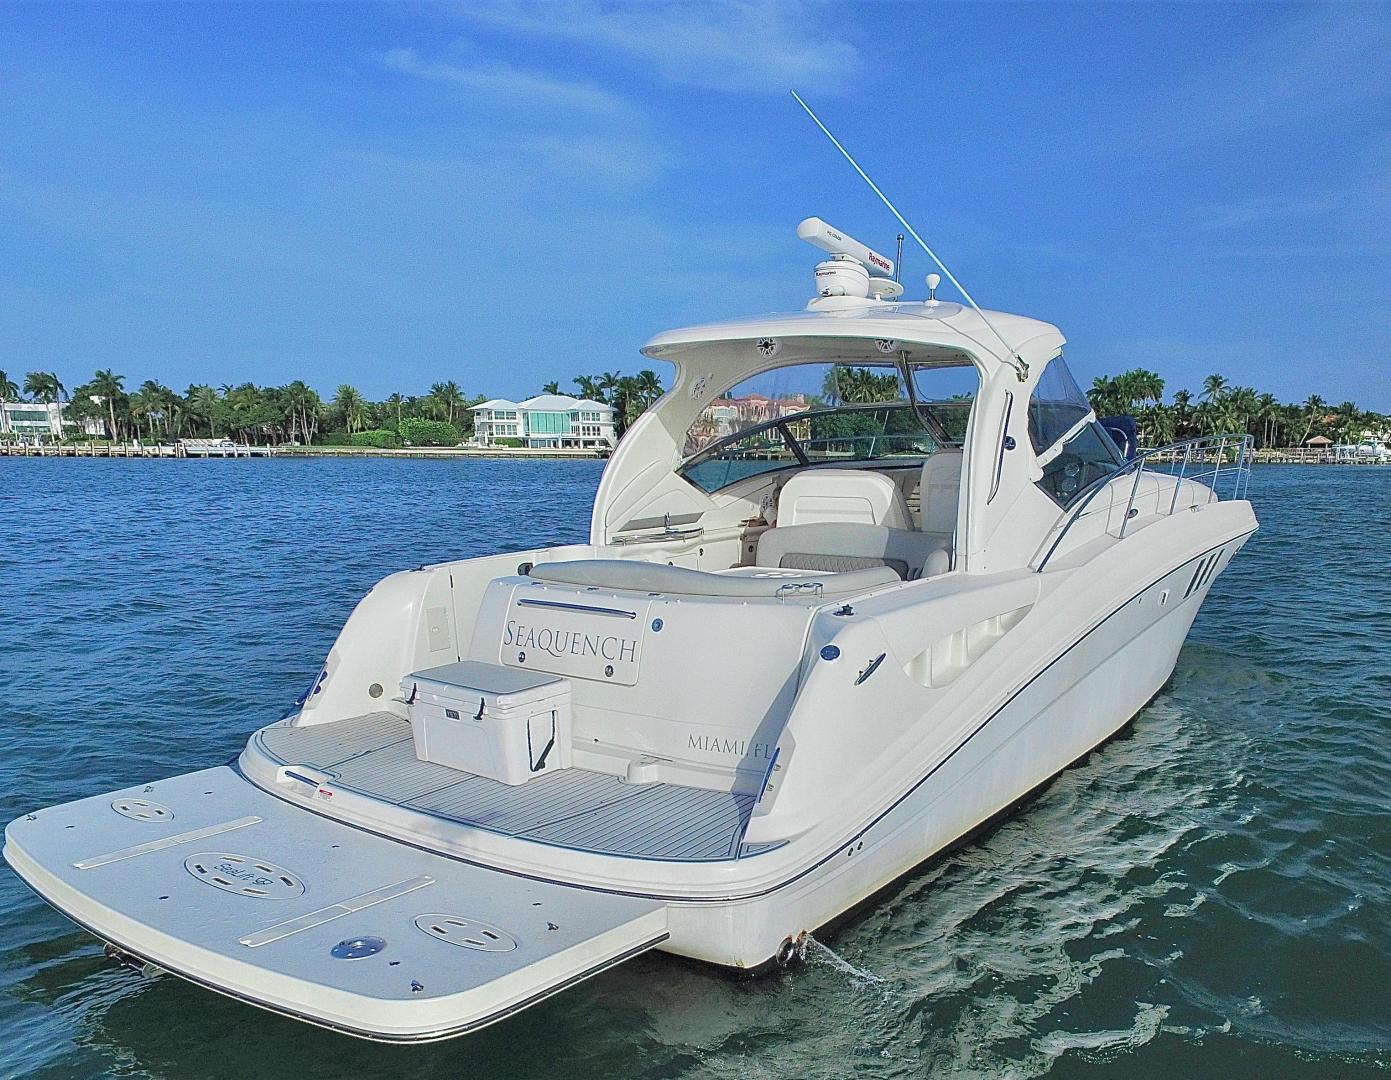 Sea Ray-Sundancer 2007-SEAQUENCH Miami-Florida-United States-1575128 | Thumbnail